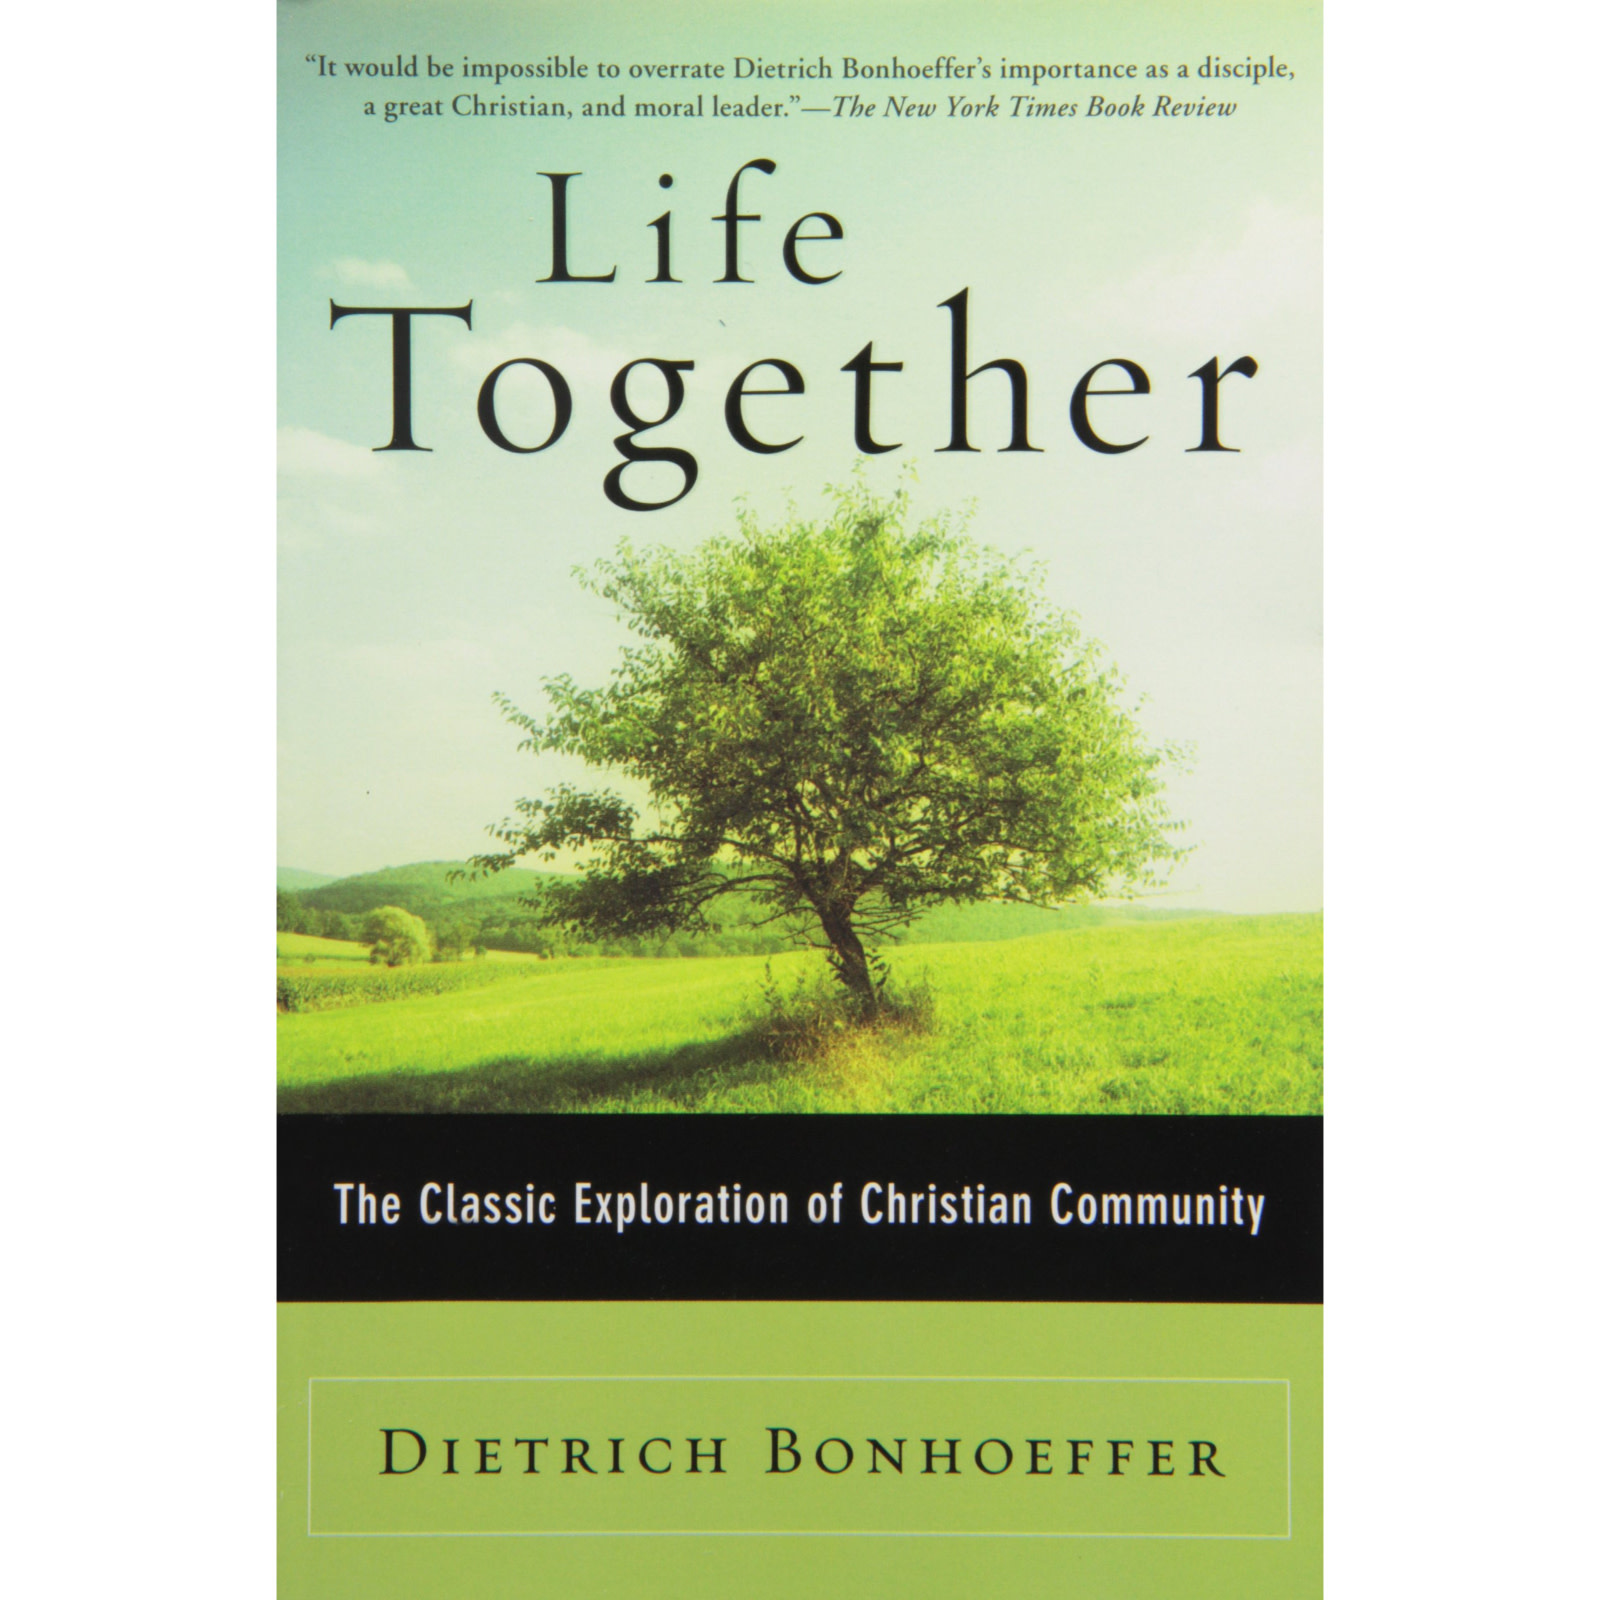 DIETRICH BOENHOFFER Life Together: The Classic Exploration of Christian Community